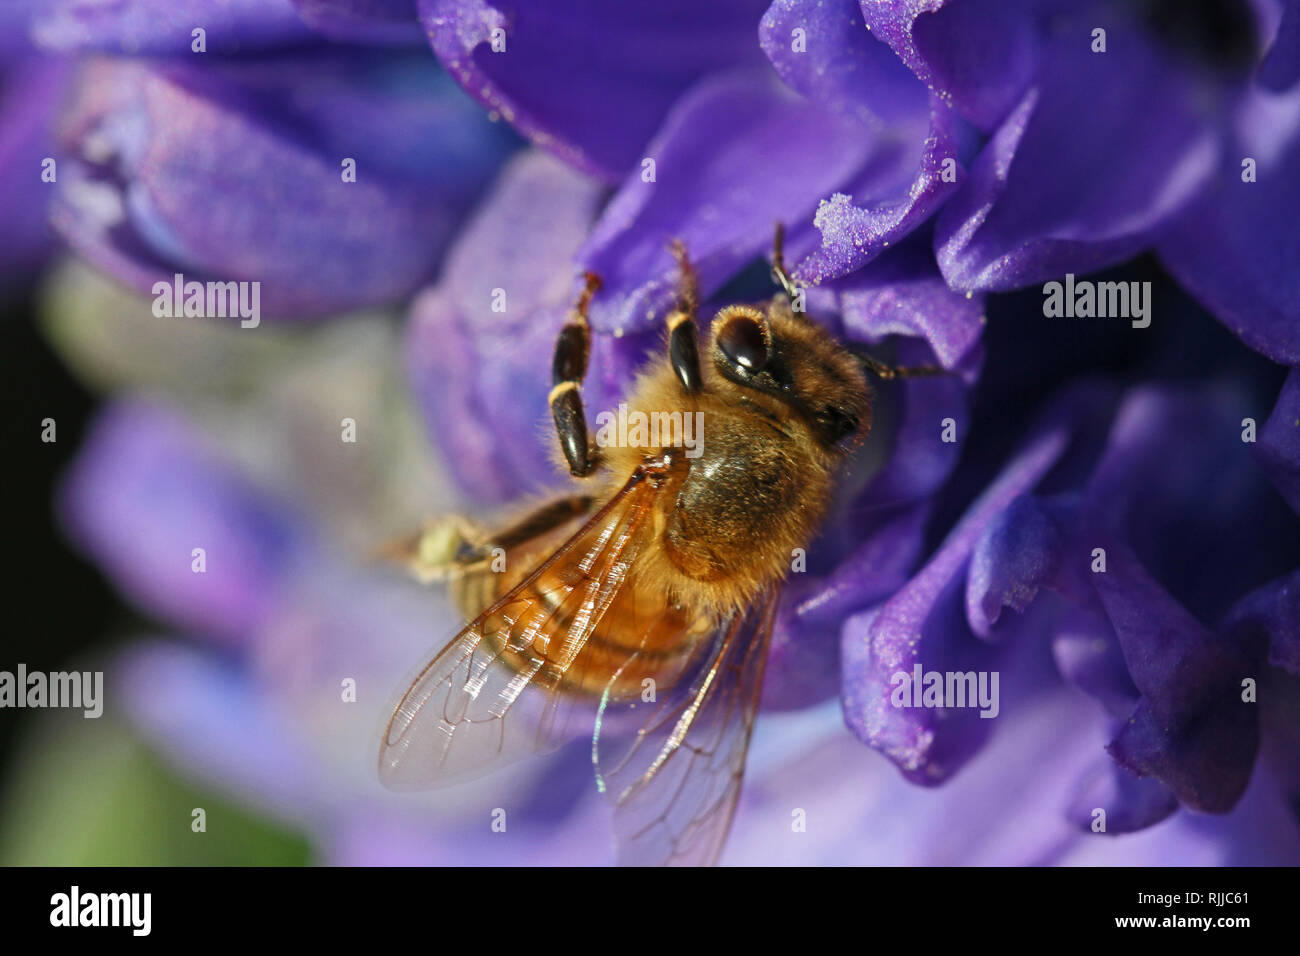 honey bee Latin apis mellifera collecting pollen on a blue hyacinth Latin hyacinthus orientalis family asparagaceae subfamily scilloideae  or bluebell - Stock Image